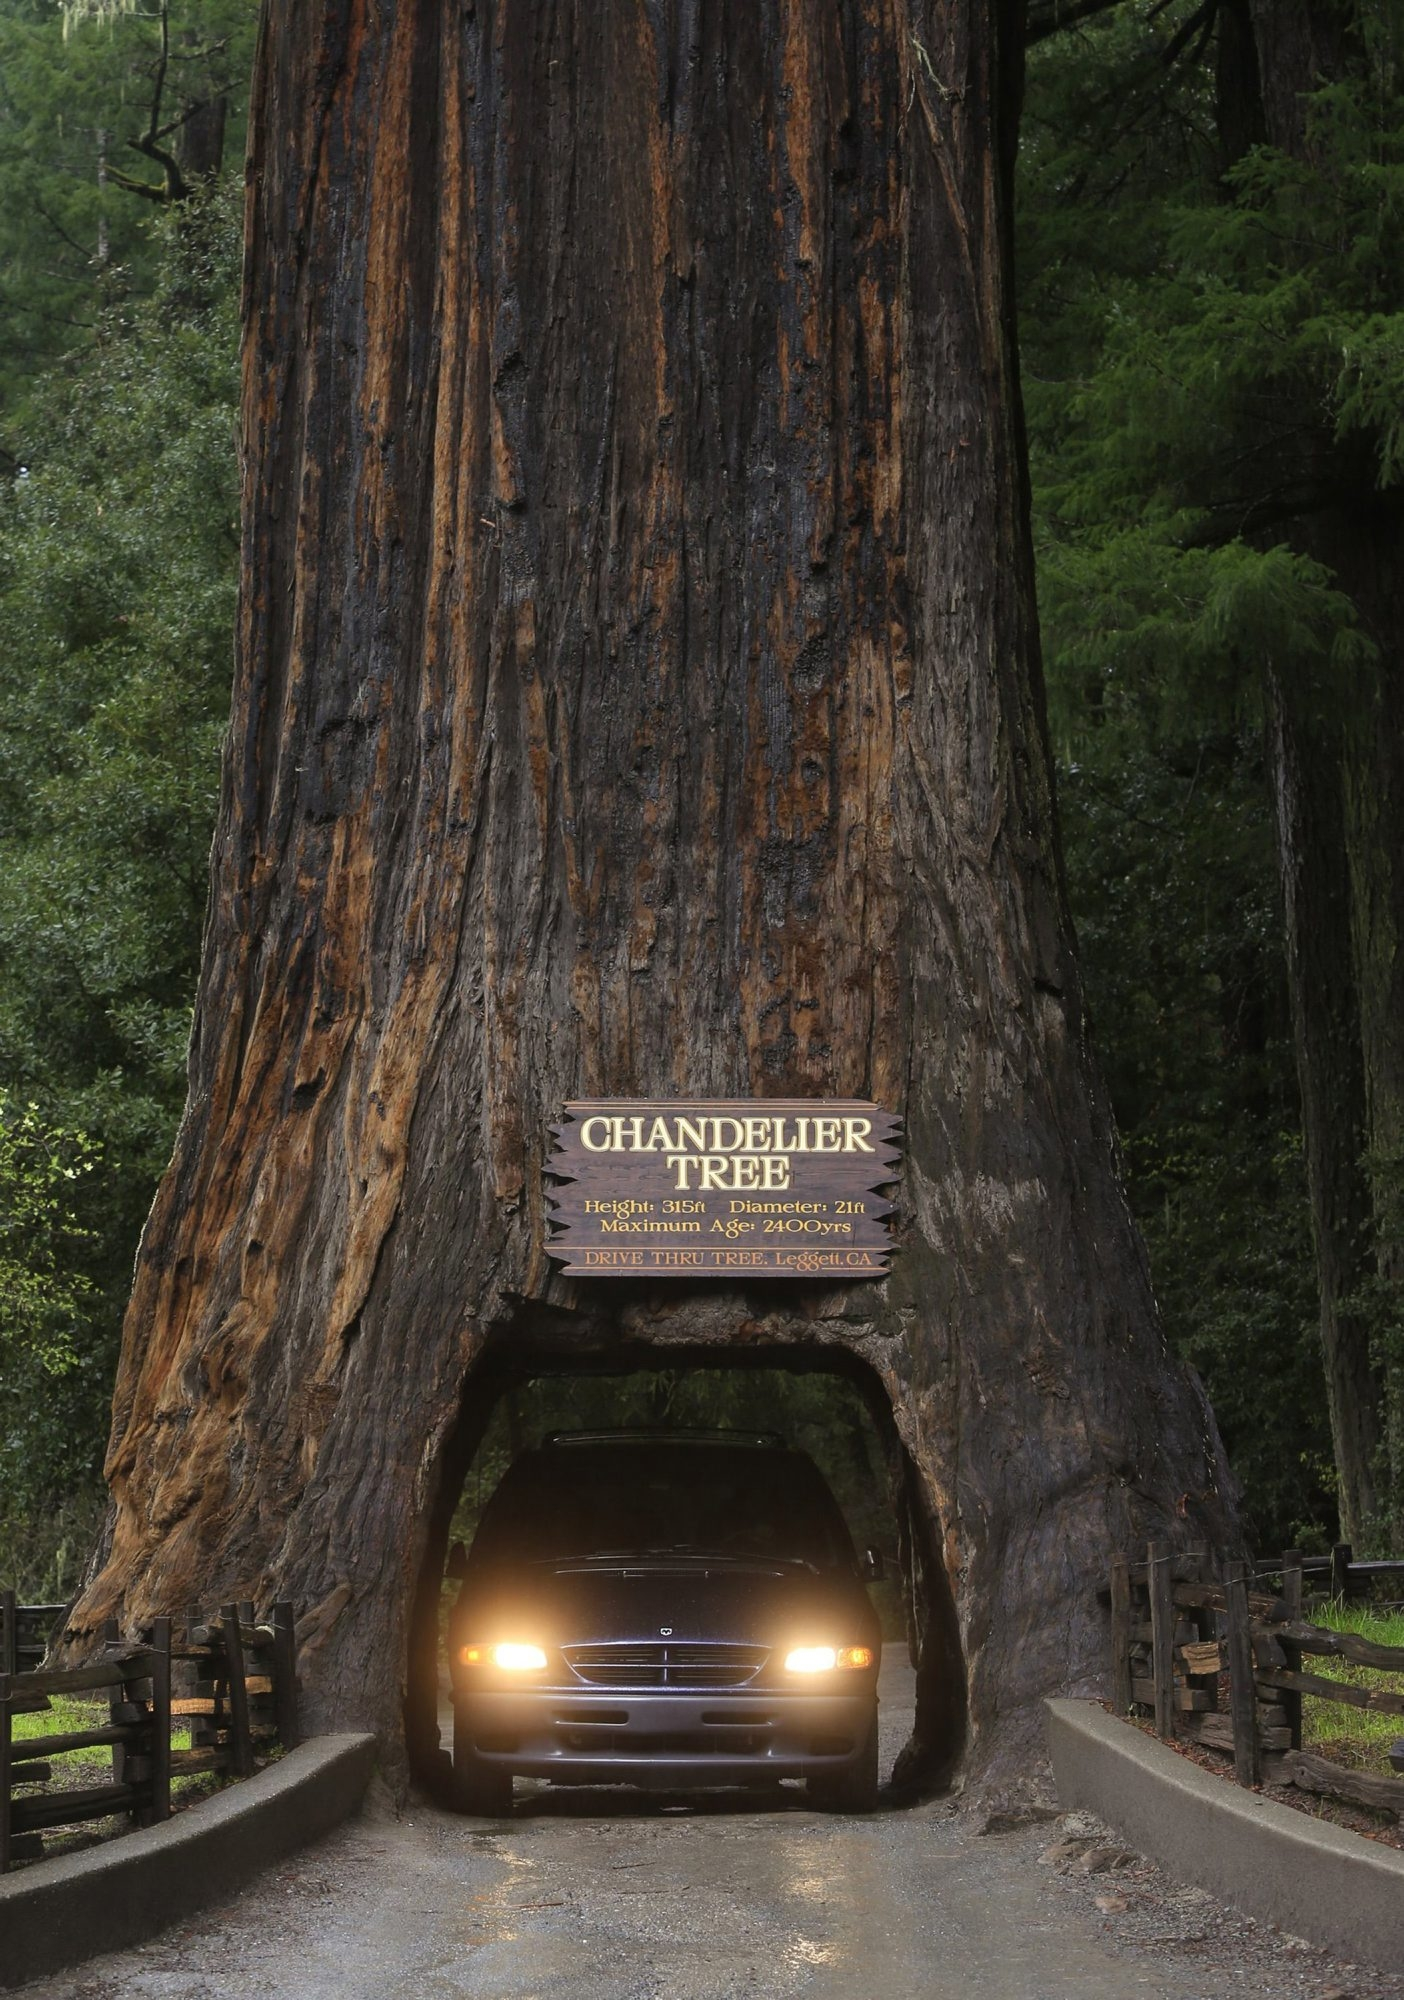 Motorists drive through the famous Chandelier Tree, a redwood in Leggett, Calif., about 180 miles north of San Francisco. Several state parks in the area offer access to miles of land filled with the tallest trees on Earth.  Los Angeles Times